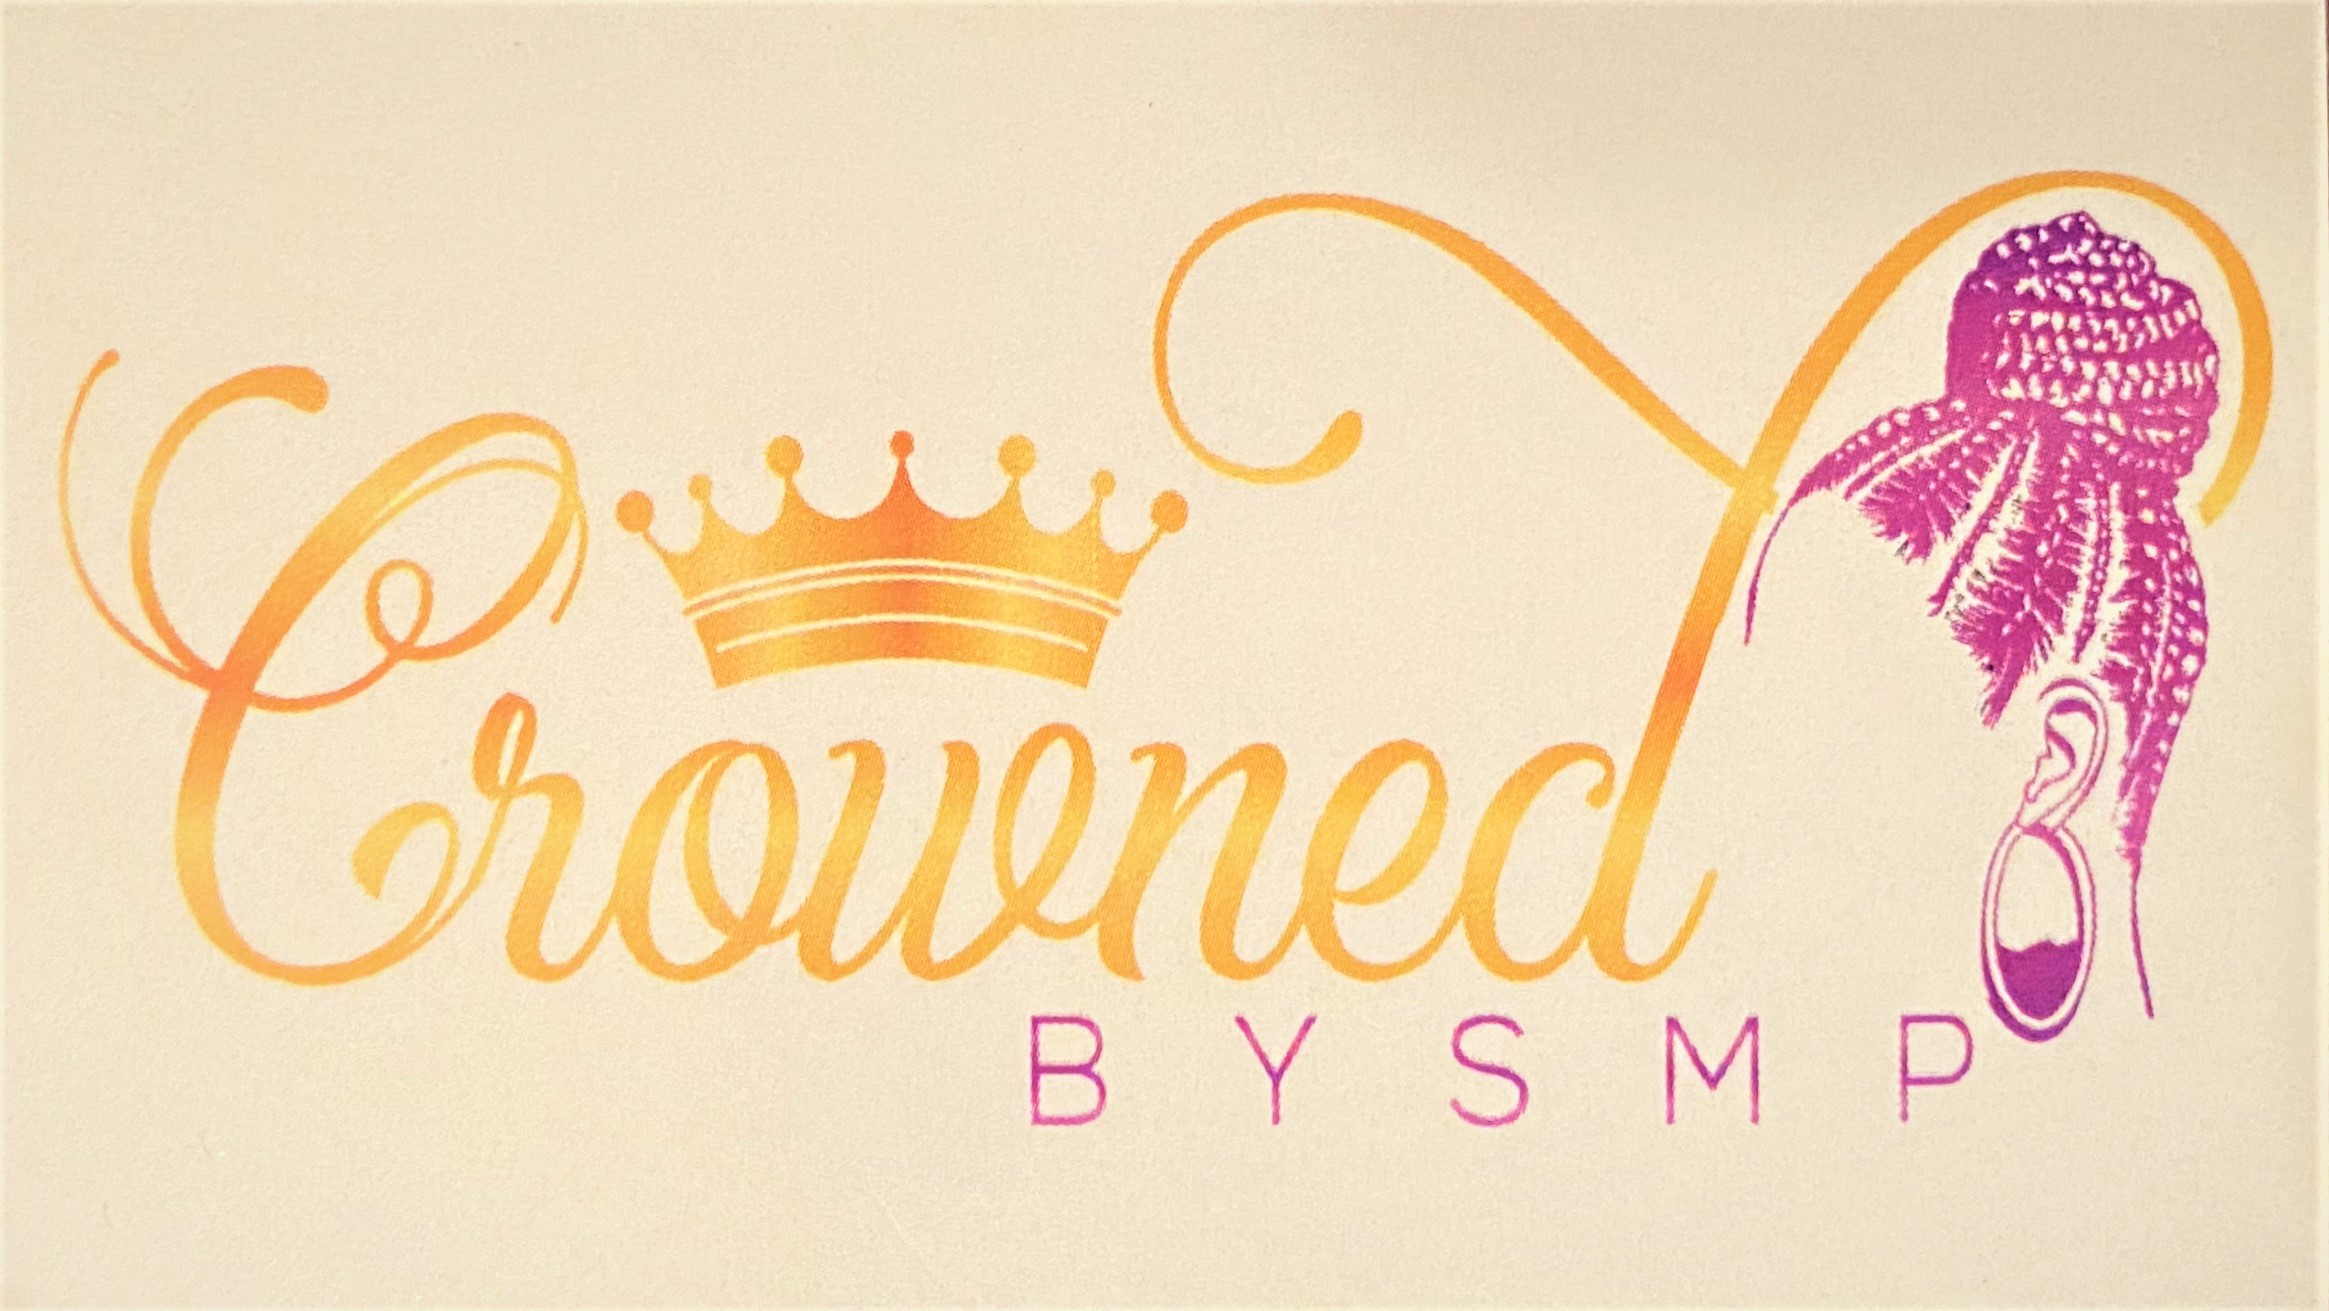 Crowned by SMP